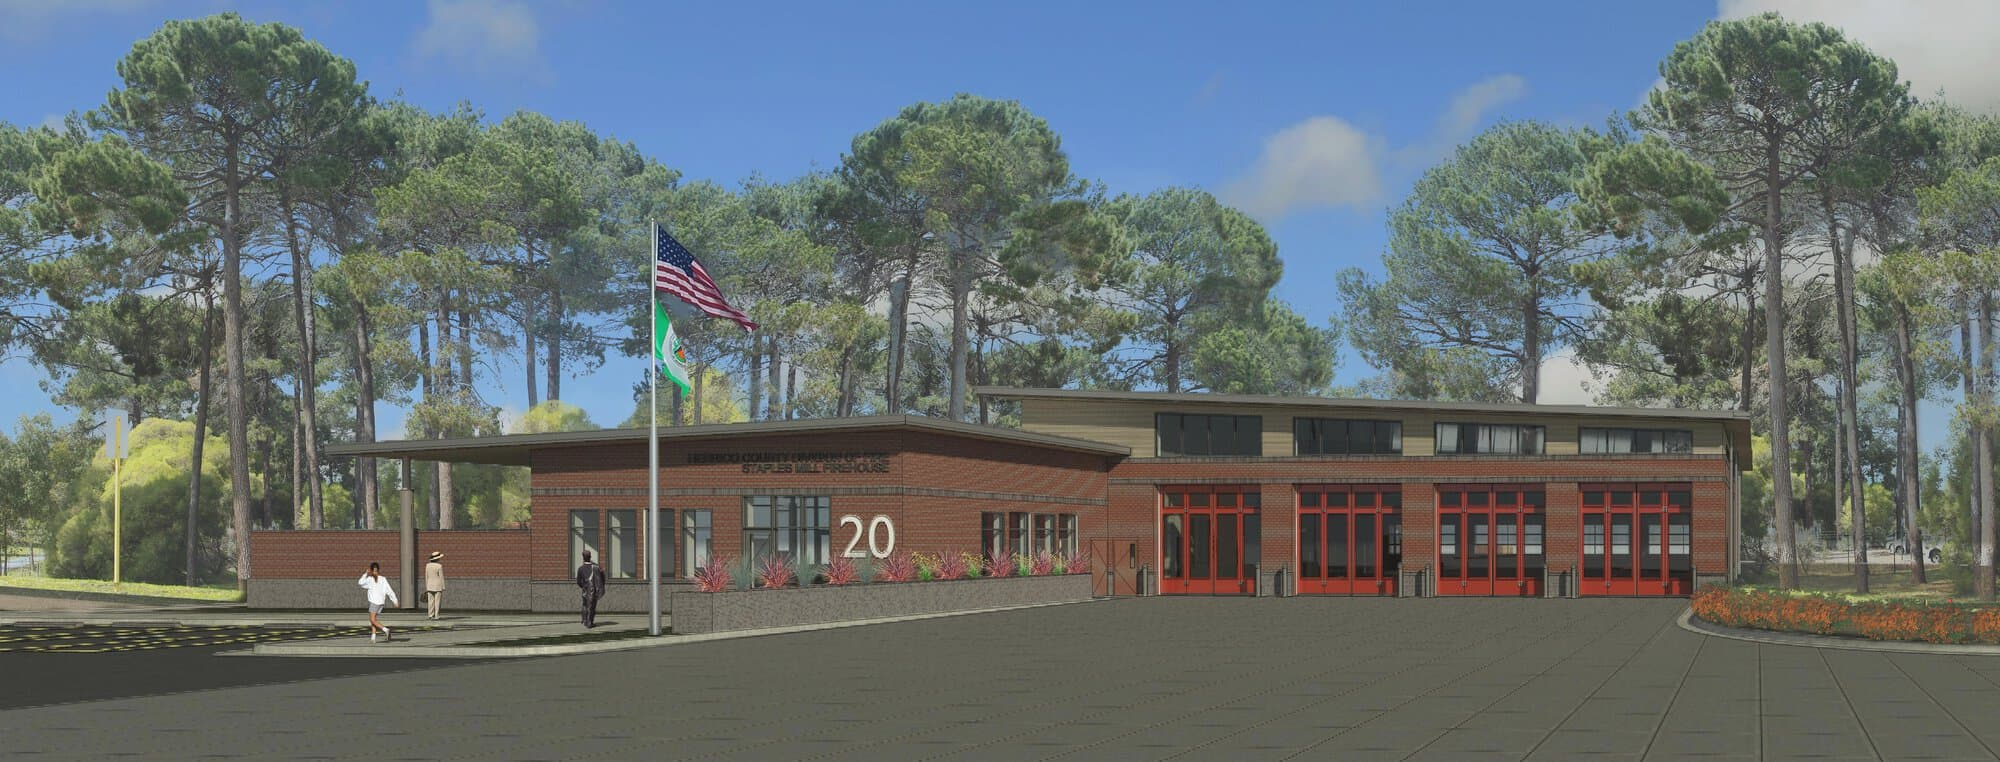 BKV Group was selected to design Fire House 20 – Staples Mill. The new station is similar to the Short Pump station but some elements will be adjusted, based on the results of a post-occupancy evaluation and survey of the firefighters.